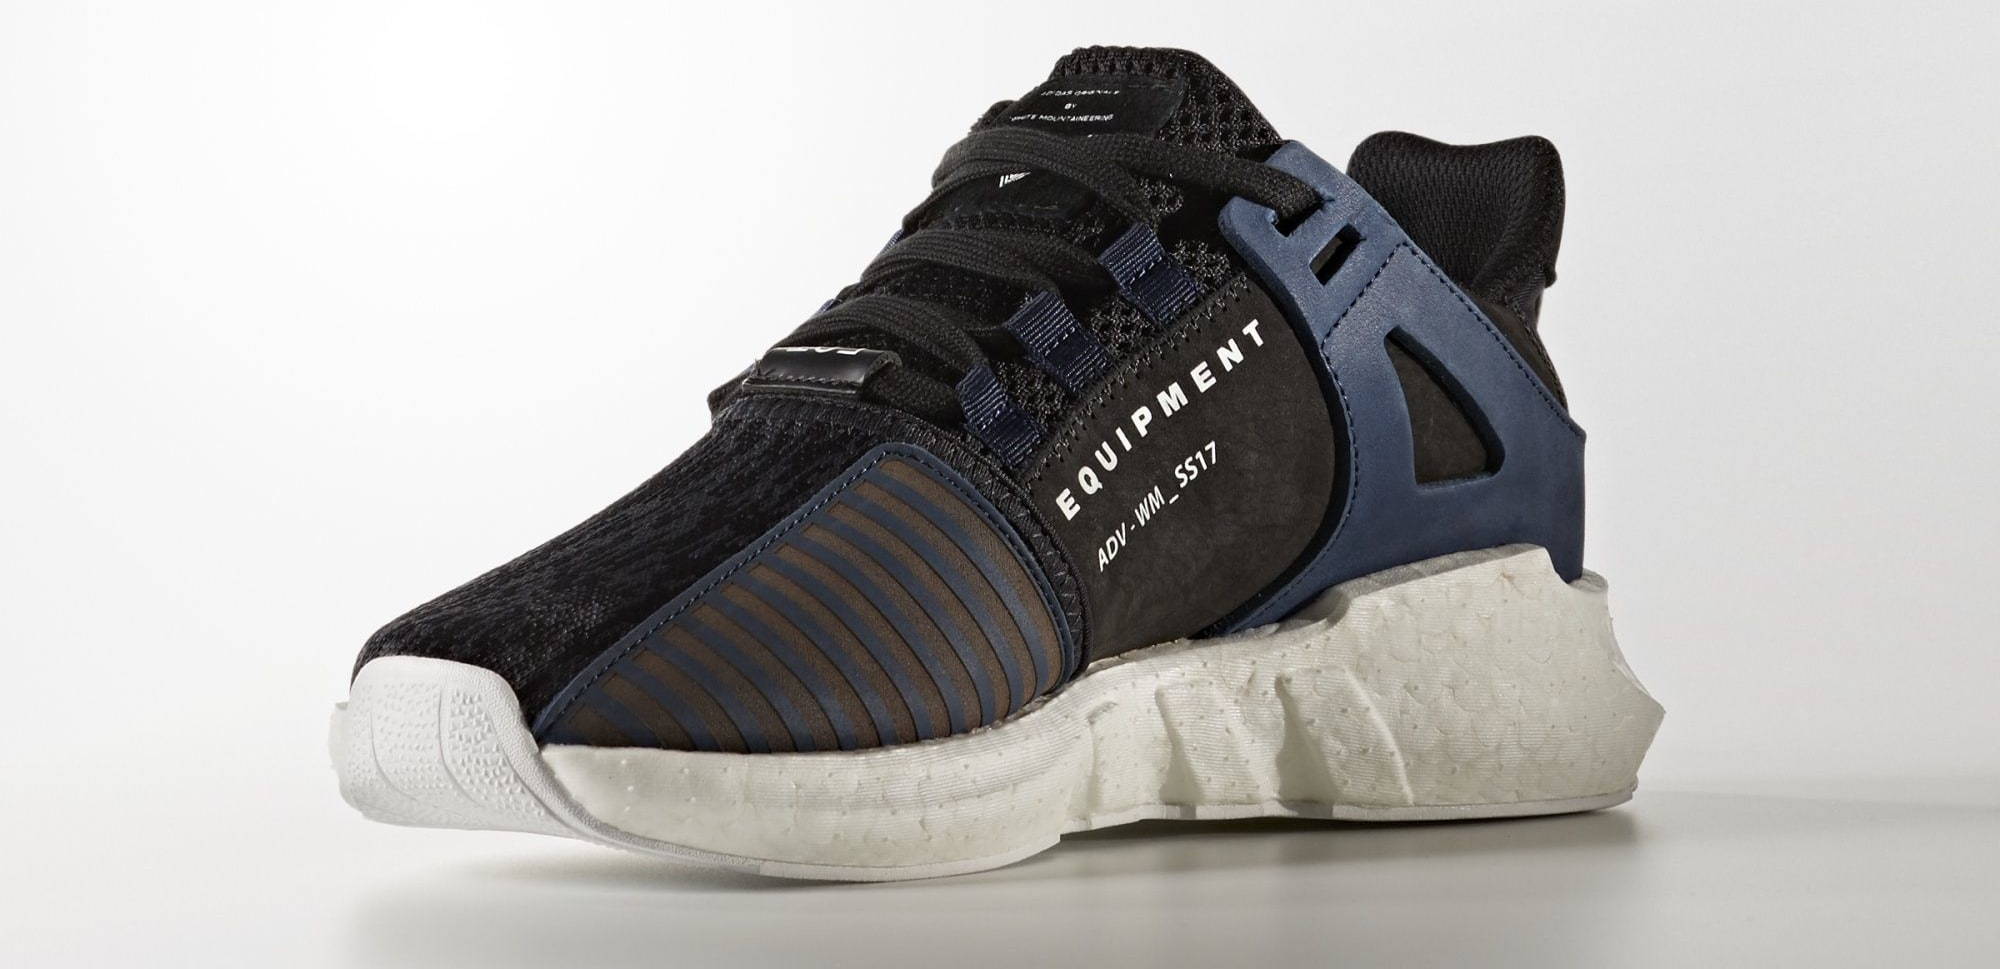 low priced 91bf8 a2c6a White Mountaineering x Adidas EQT Support 93-17 medial